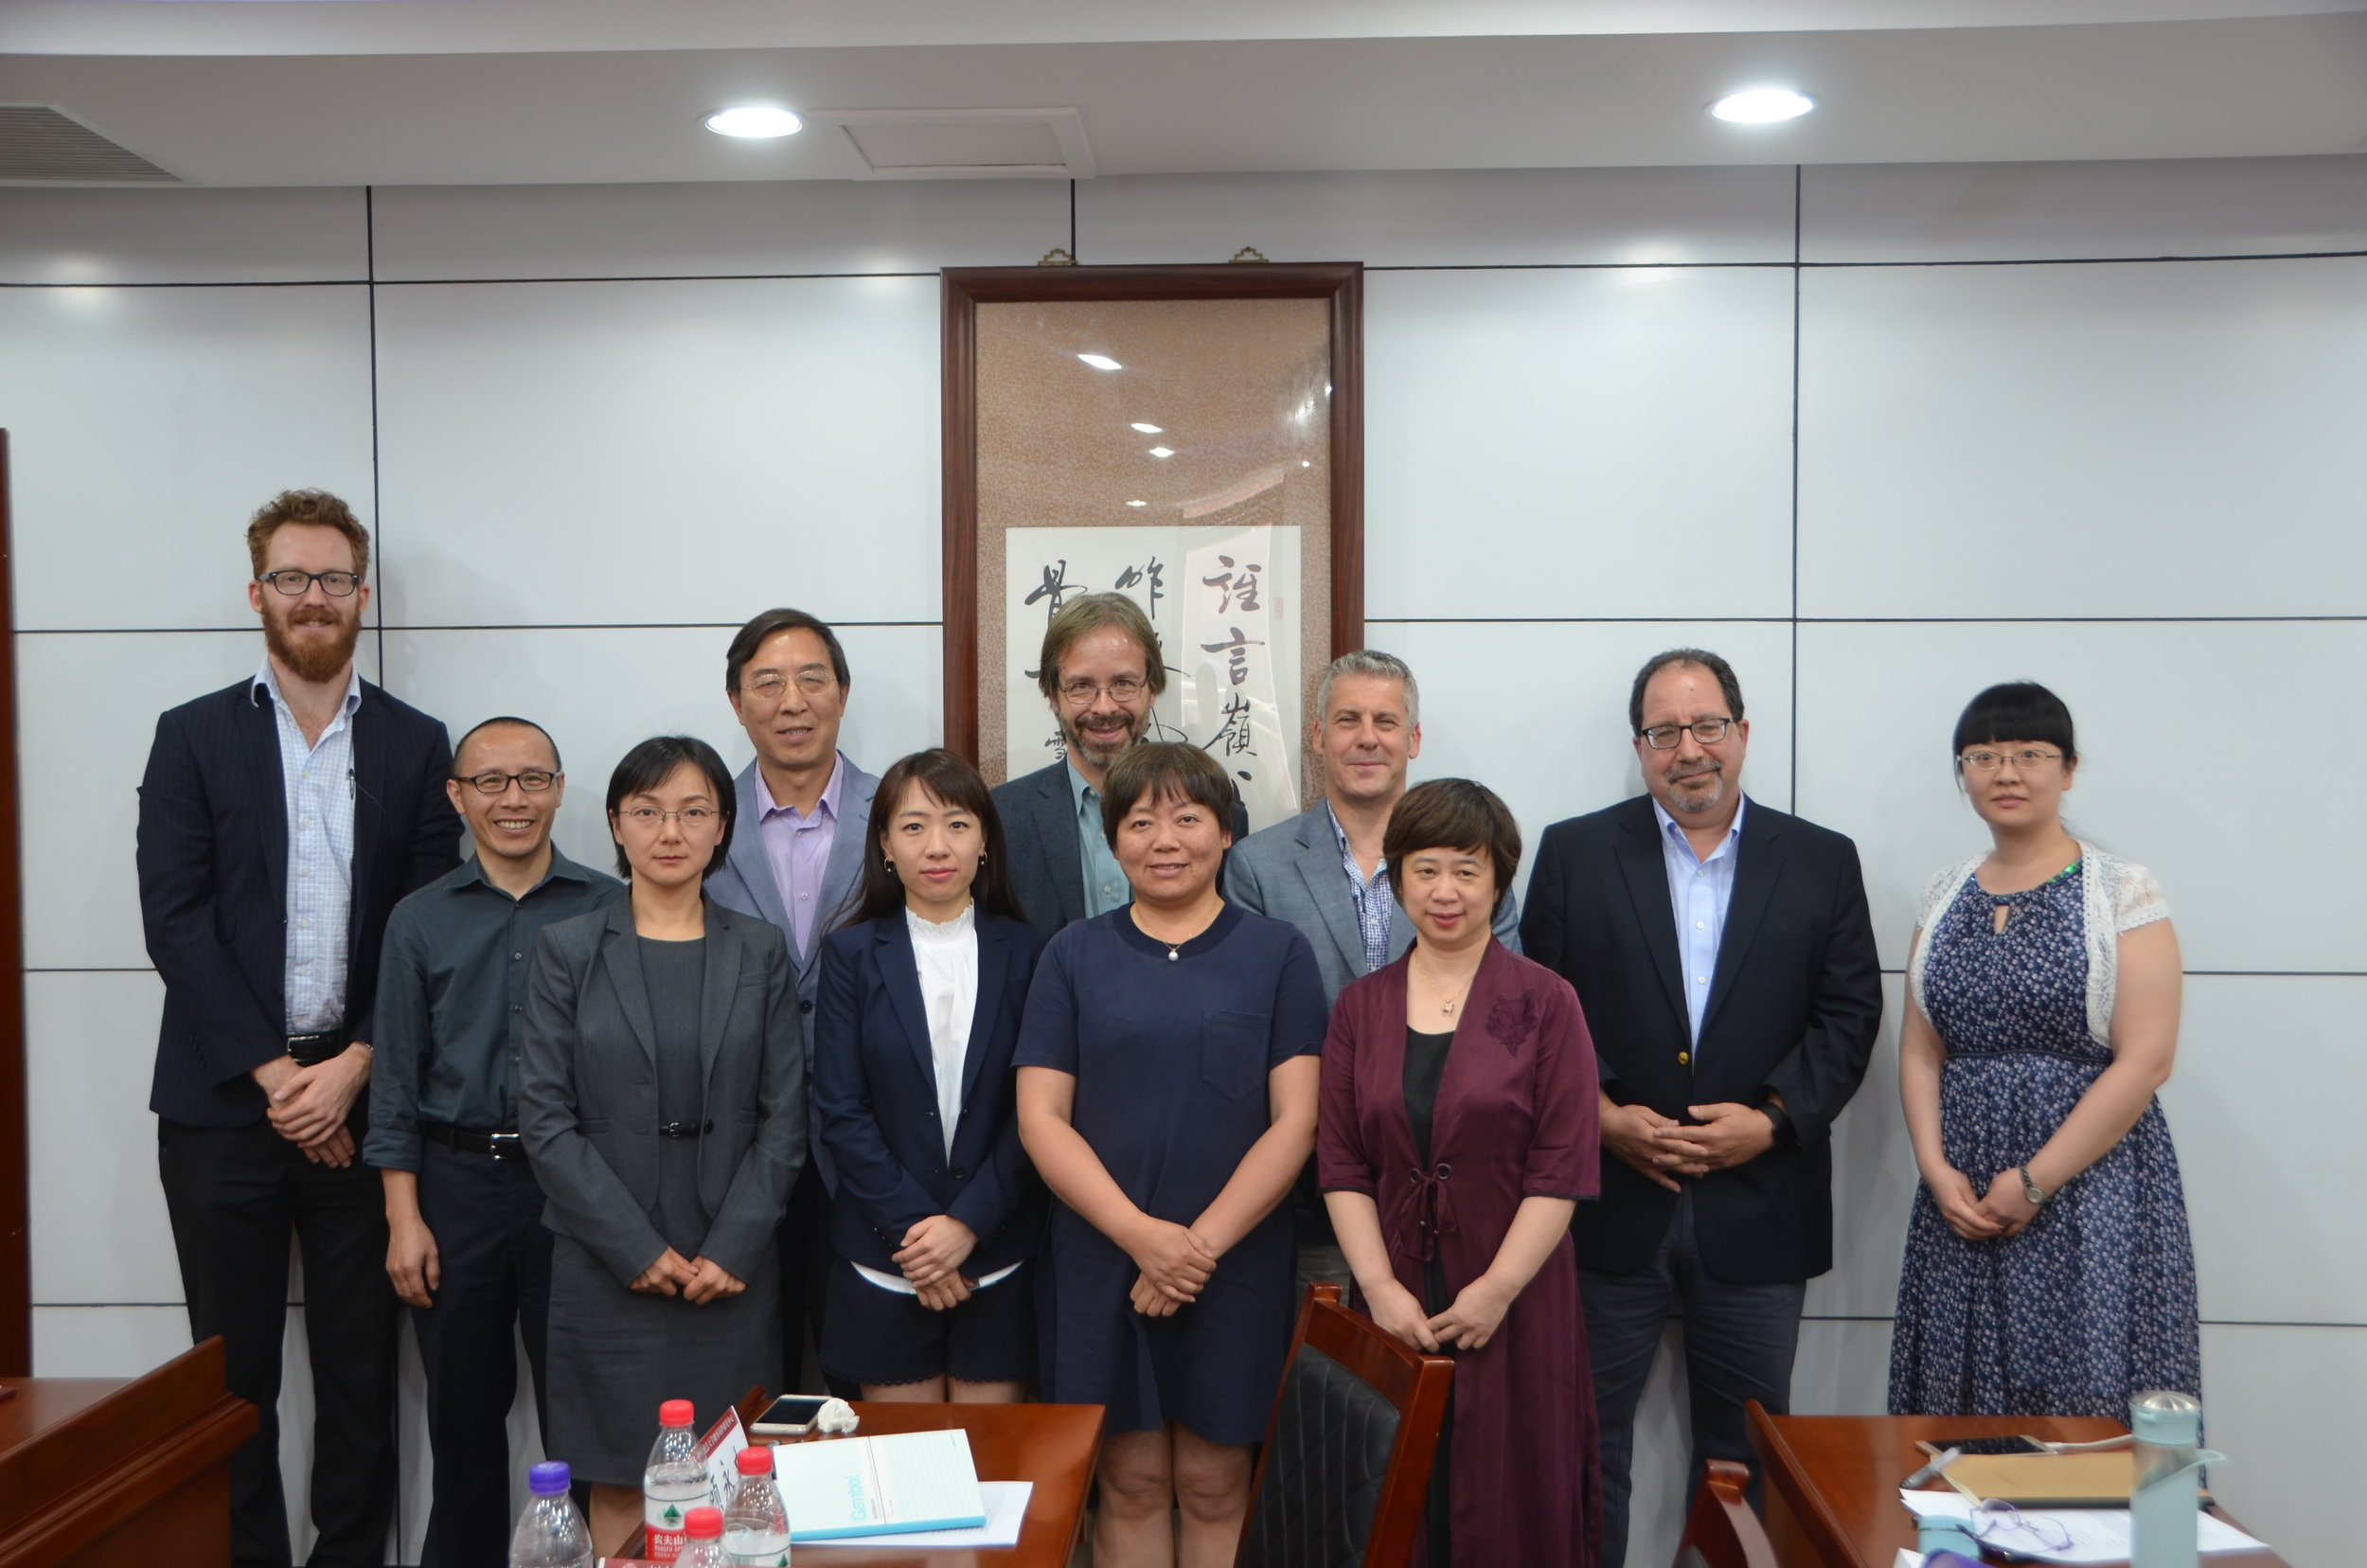 Group photo at China University of Political Science and Law